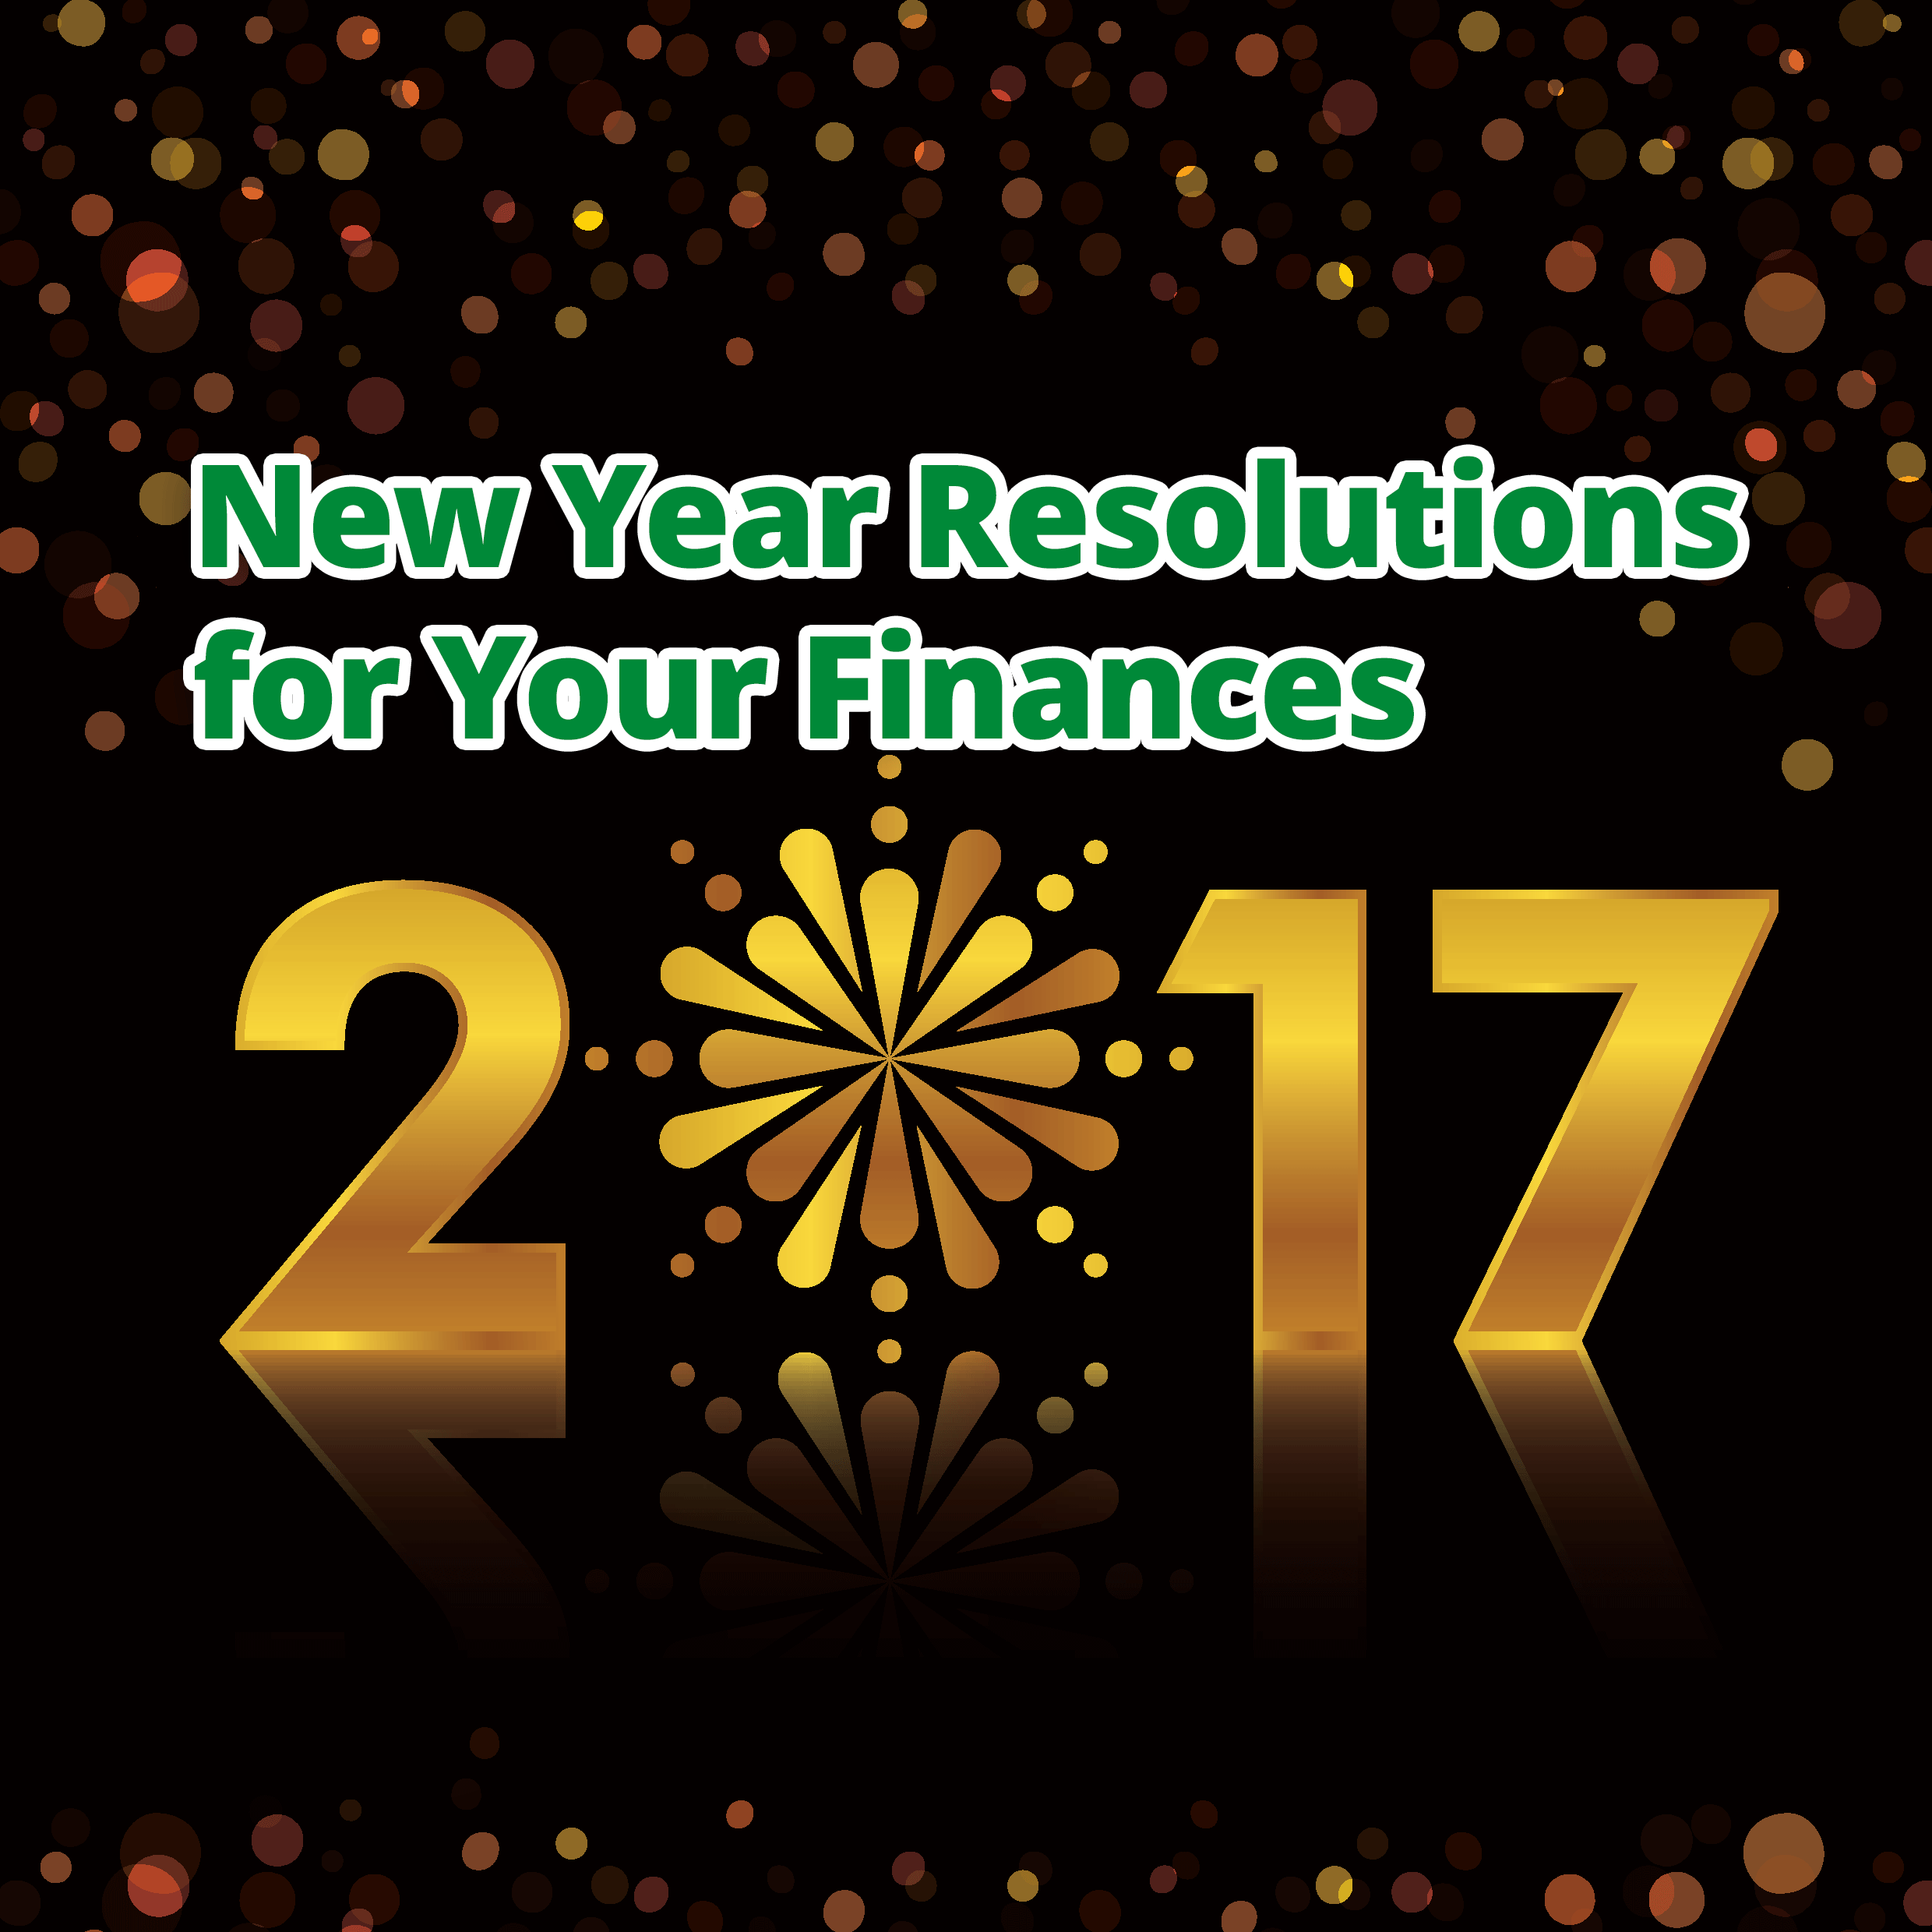 New Year Resolutions for Your Finances